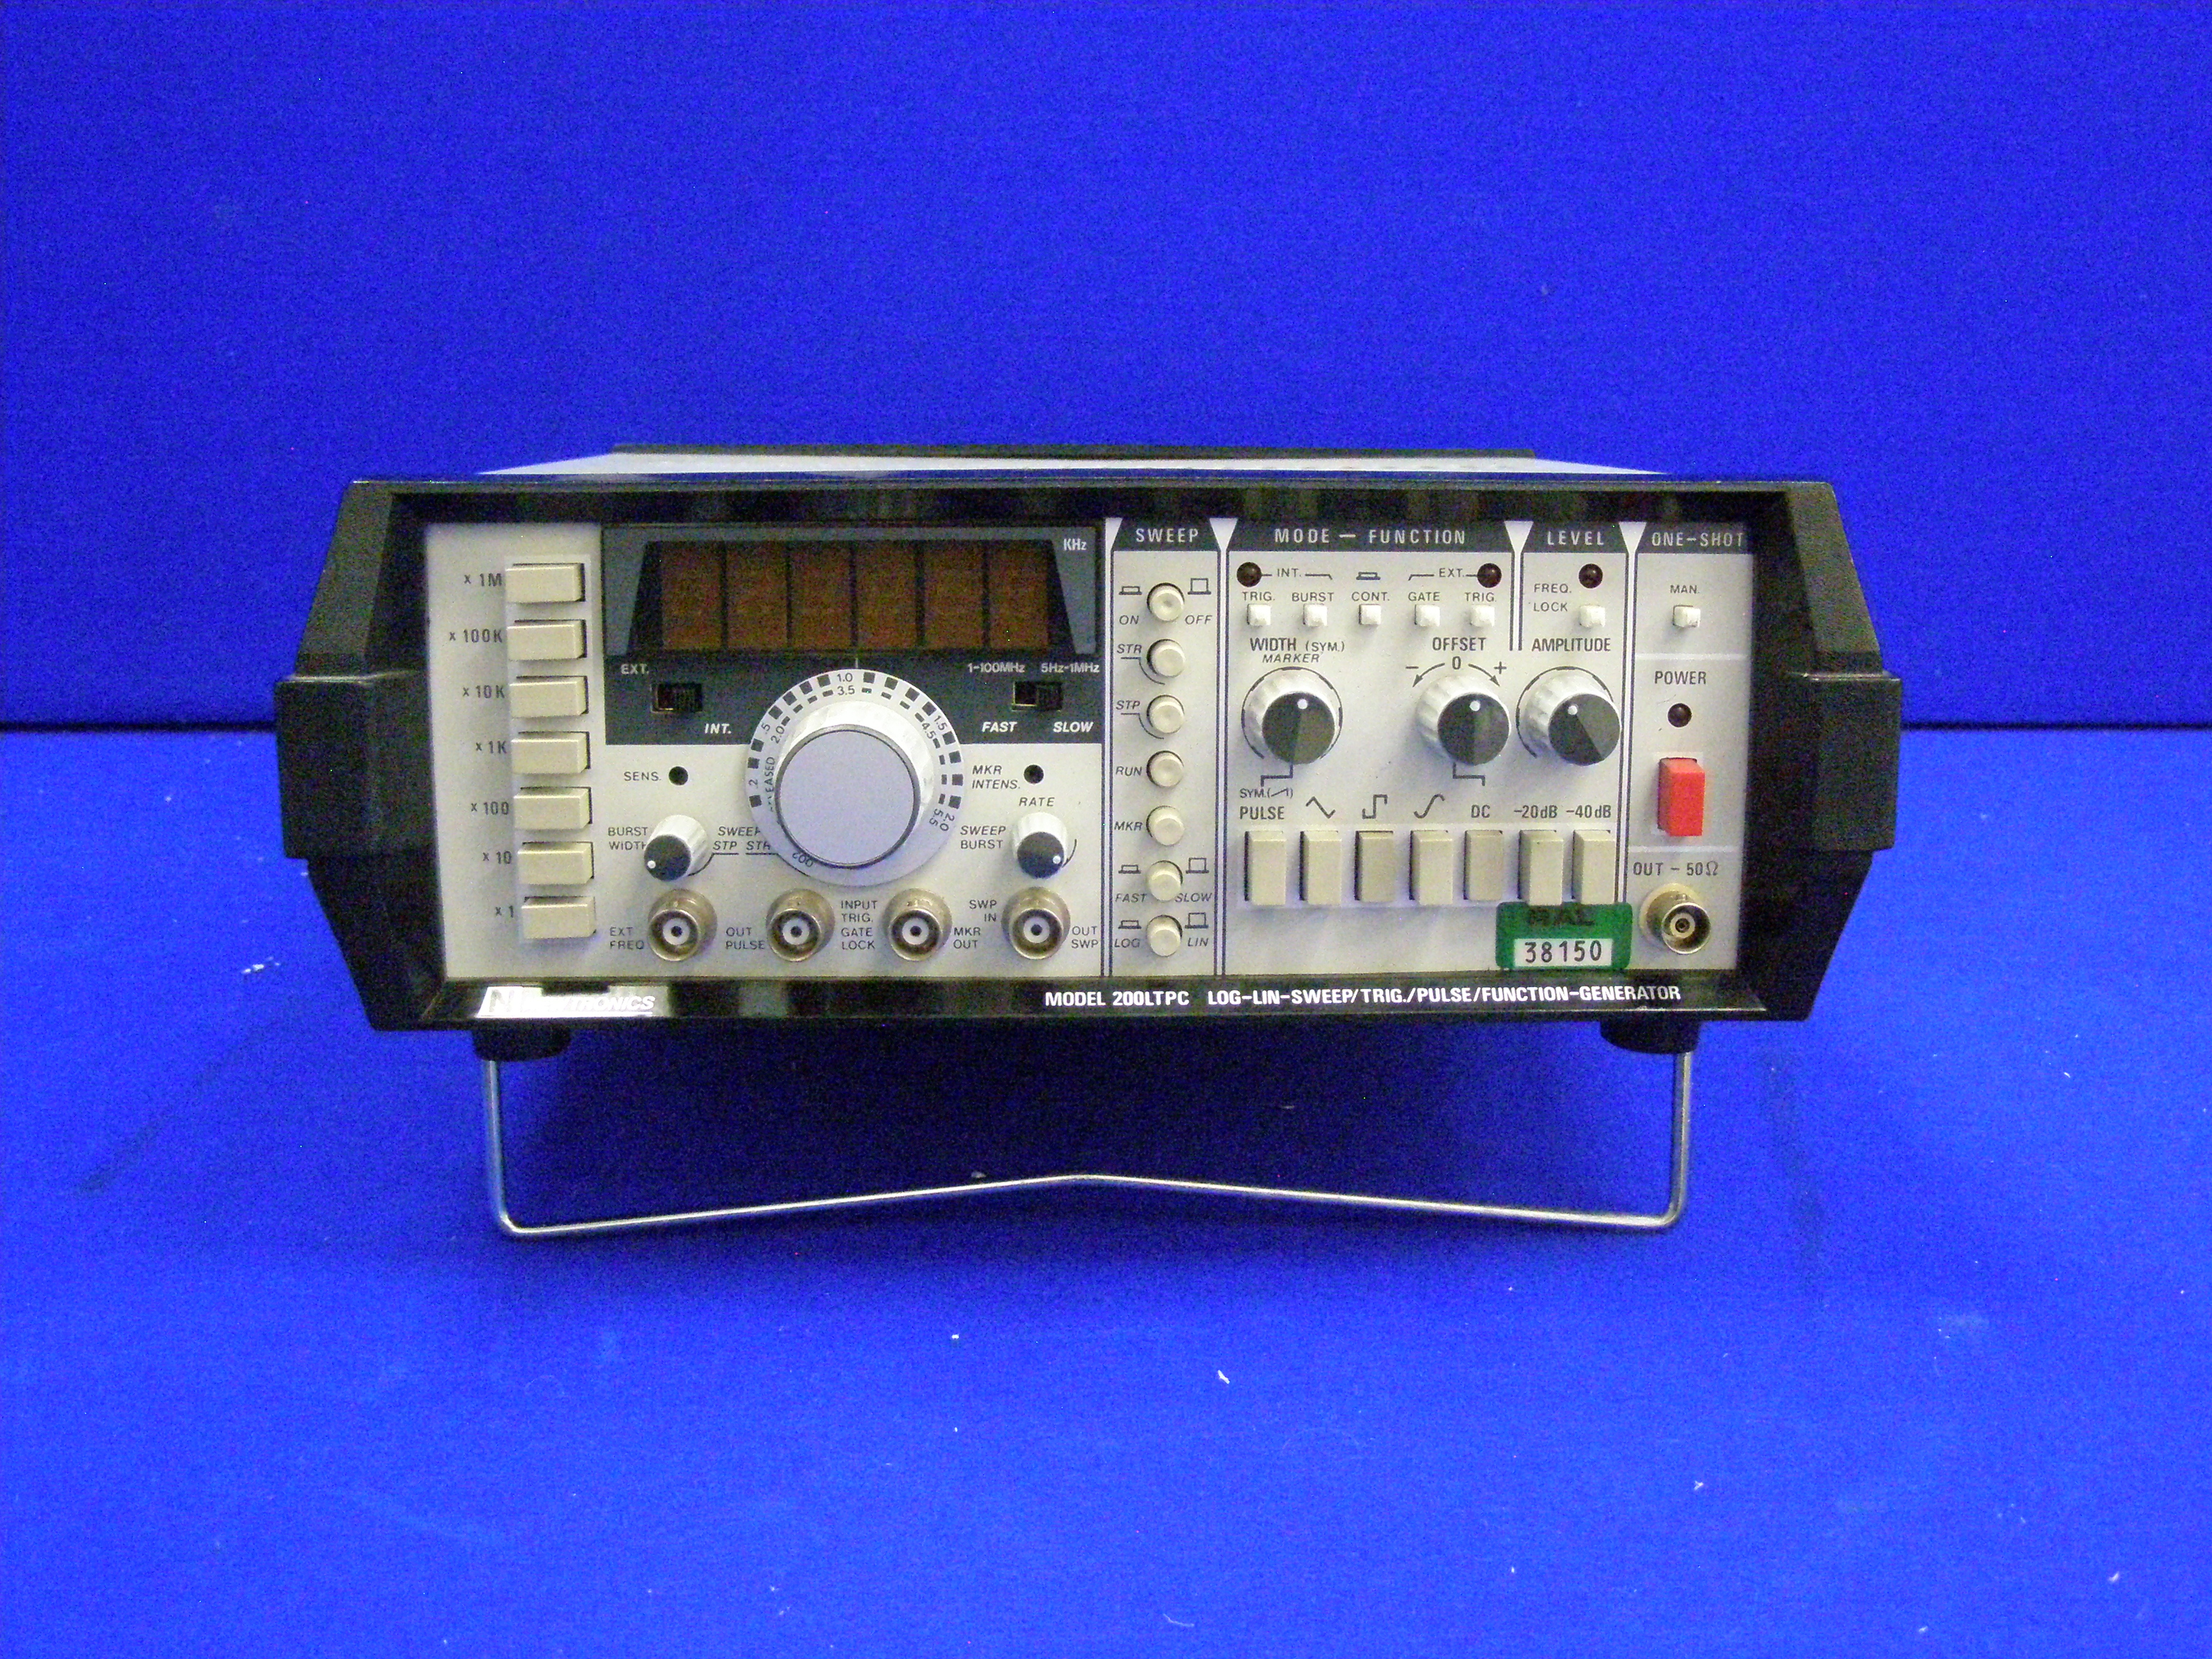 Isis 200ltpc Function Generator